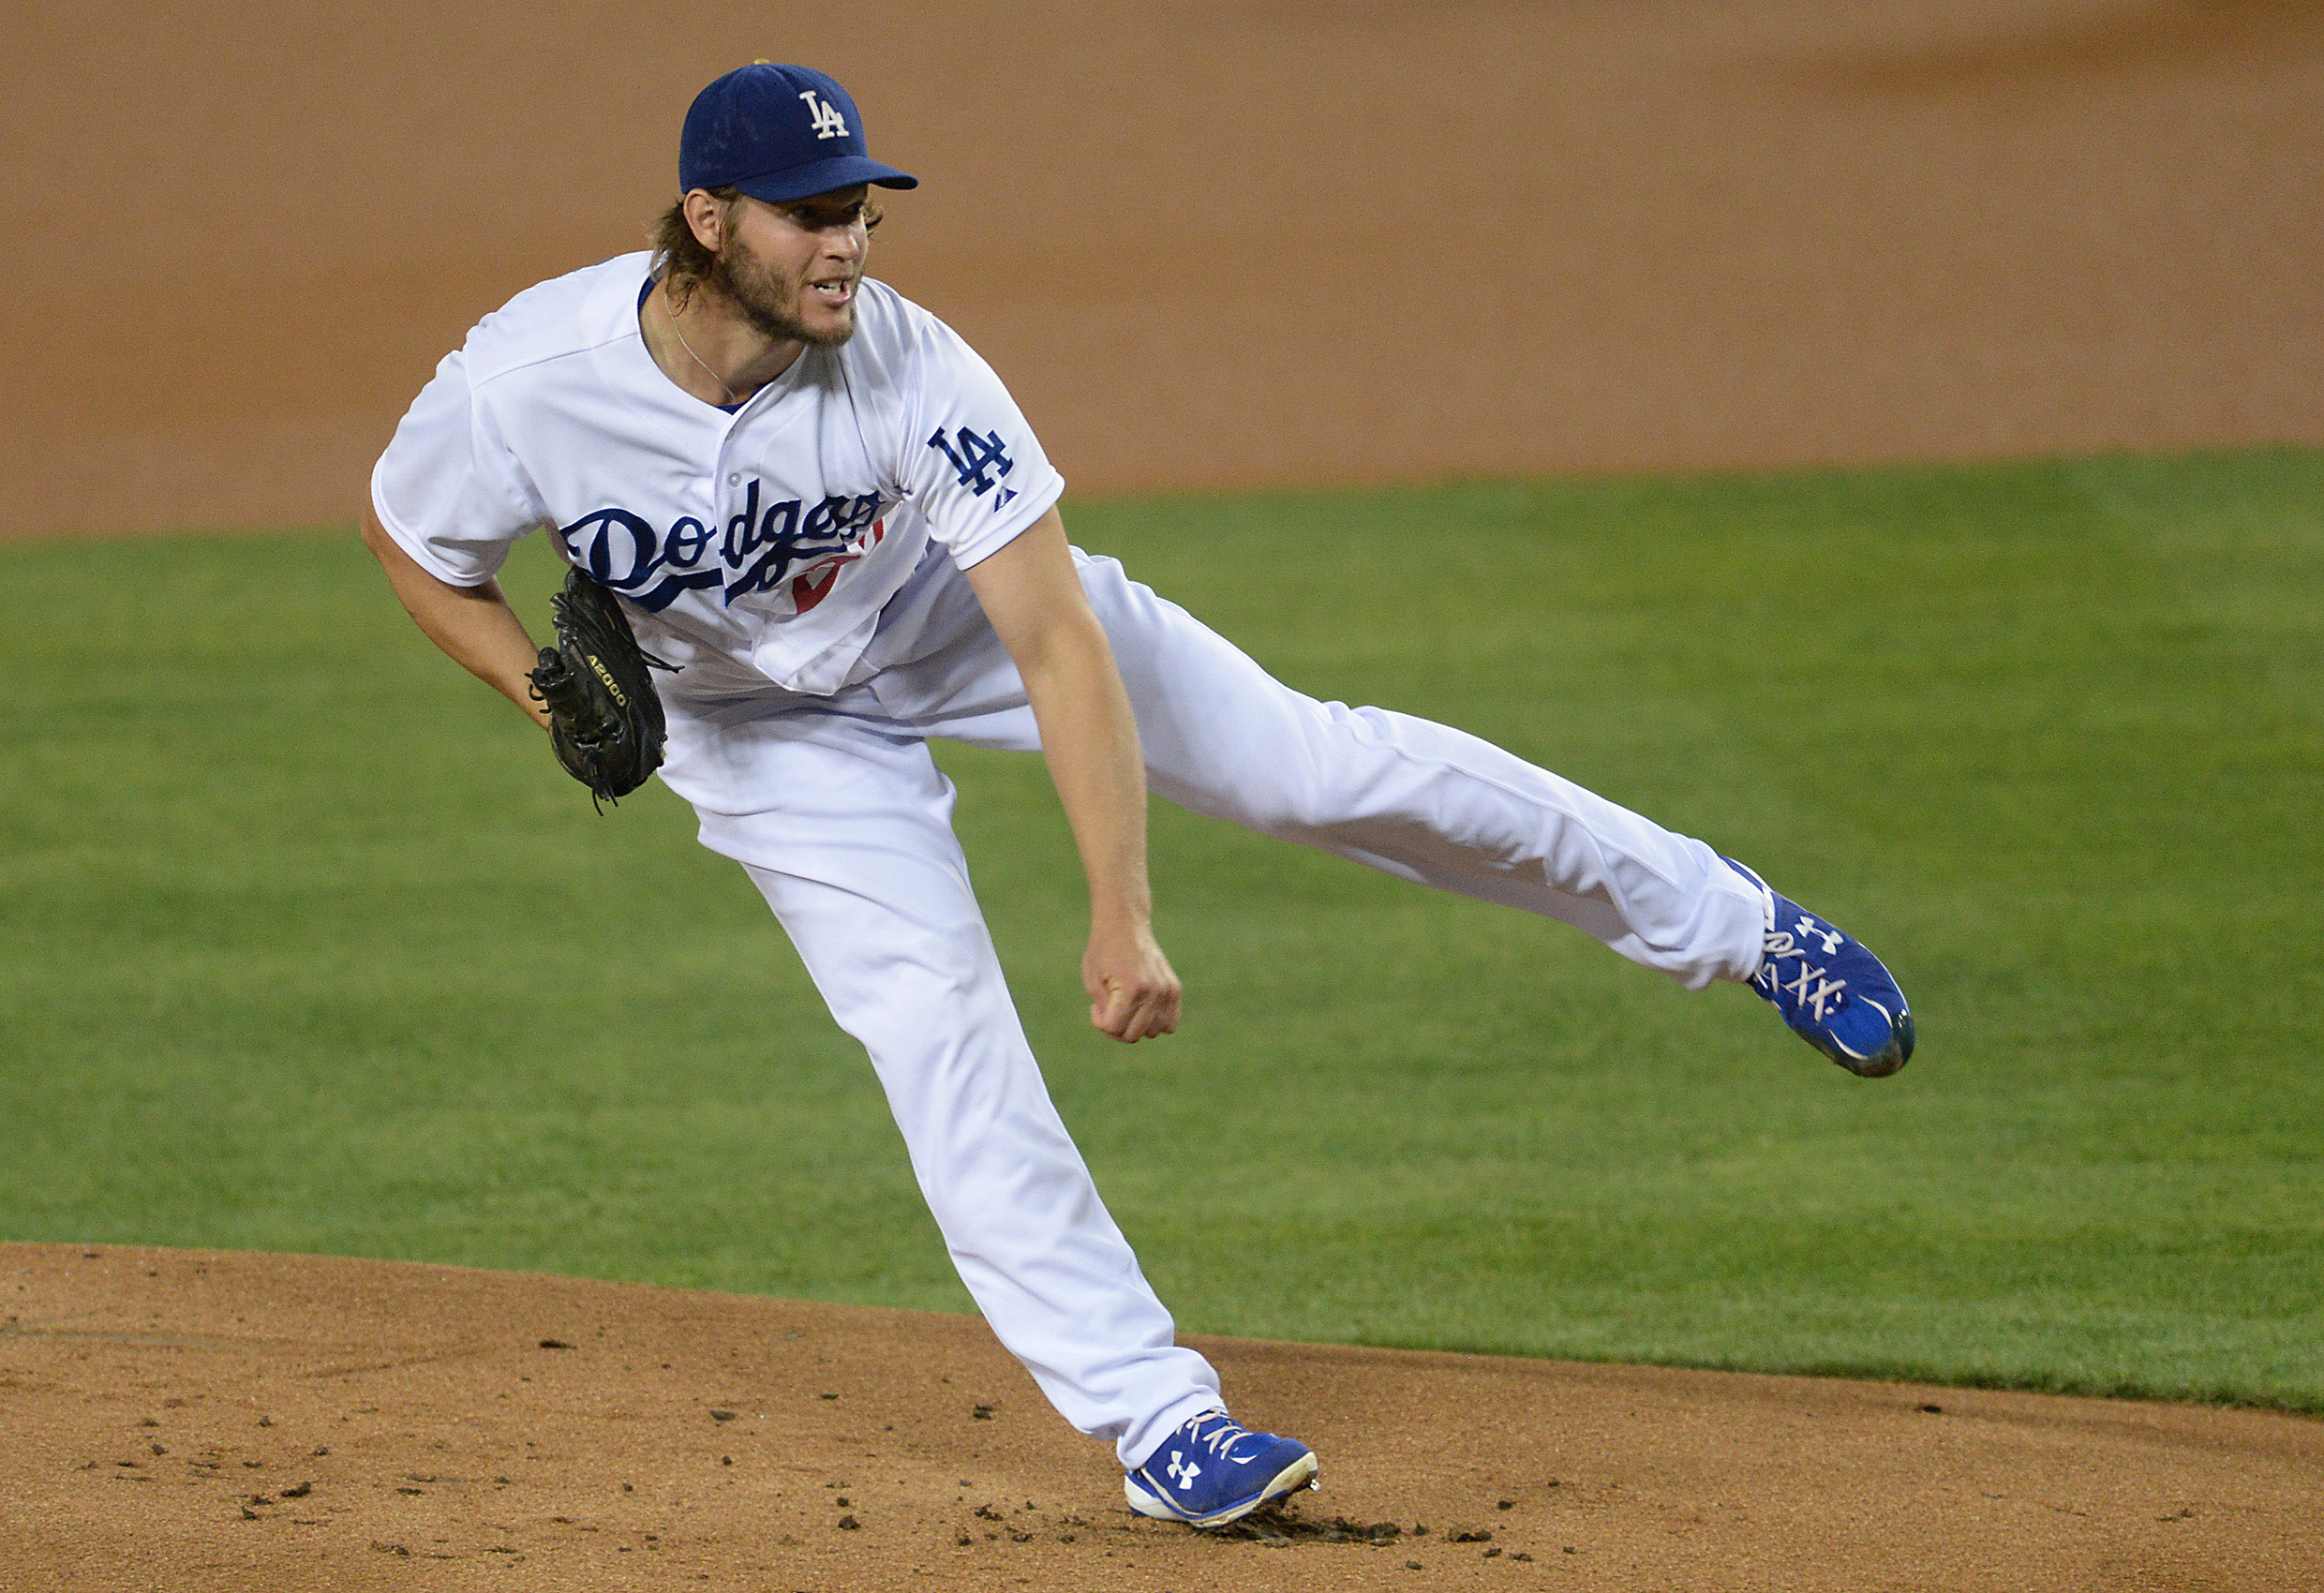 The best player in the NL West, Clayton Kershaw